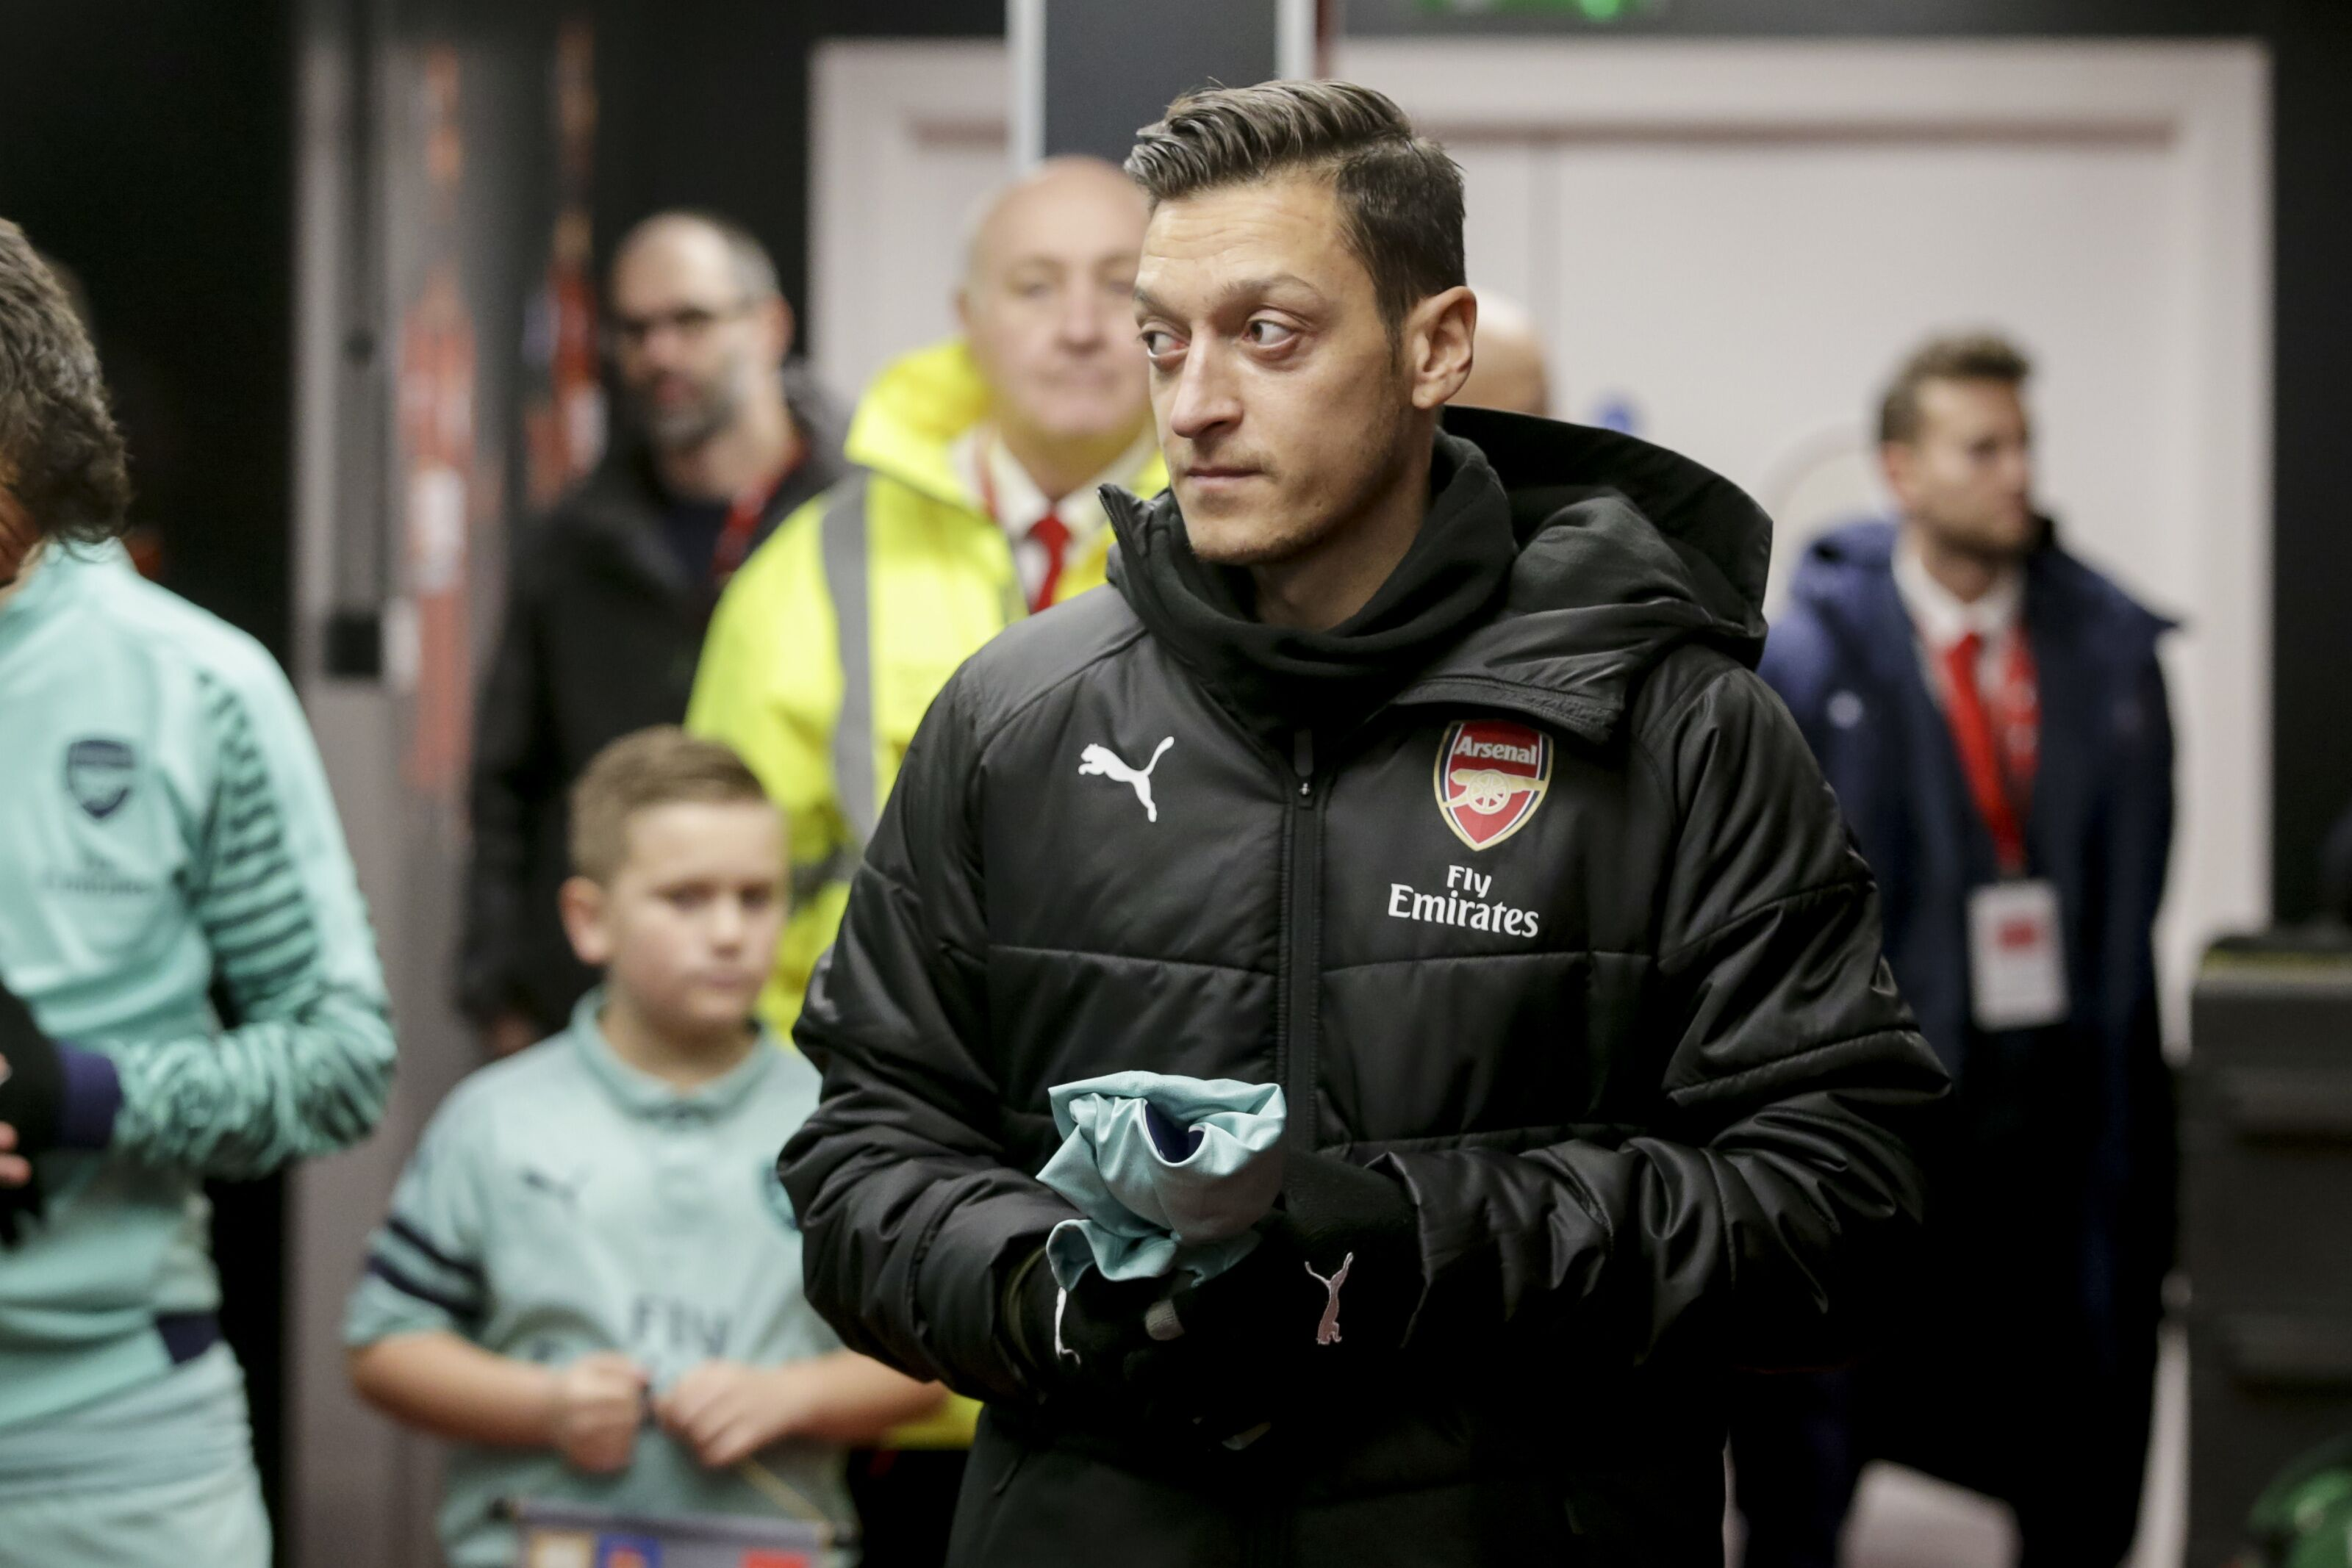 Arsenal are stepping up their efforts to dispose of Mesut Ozil